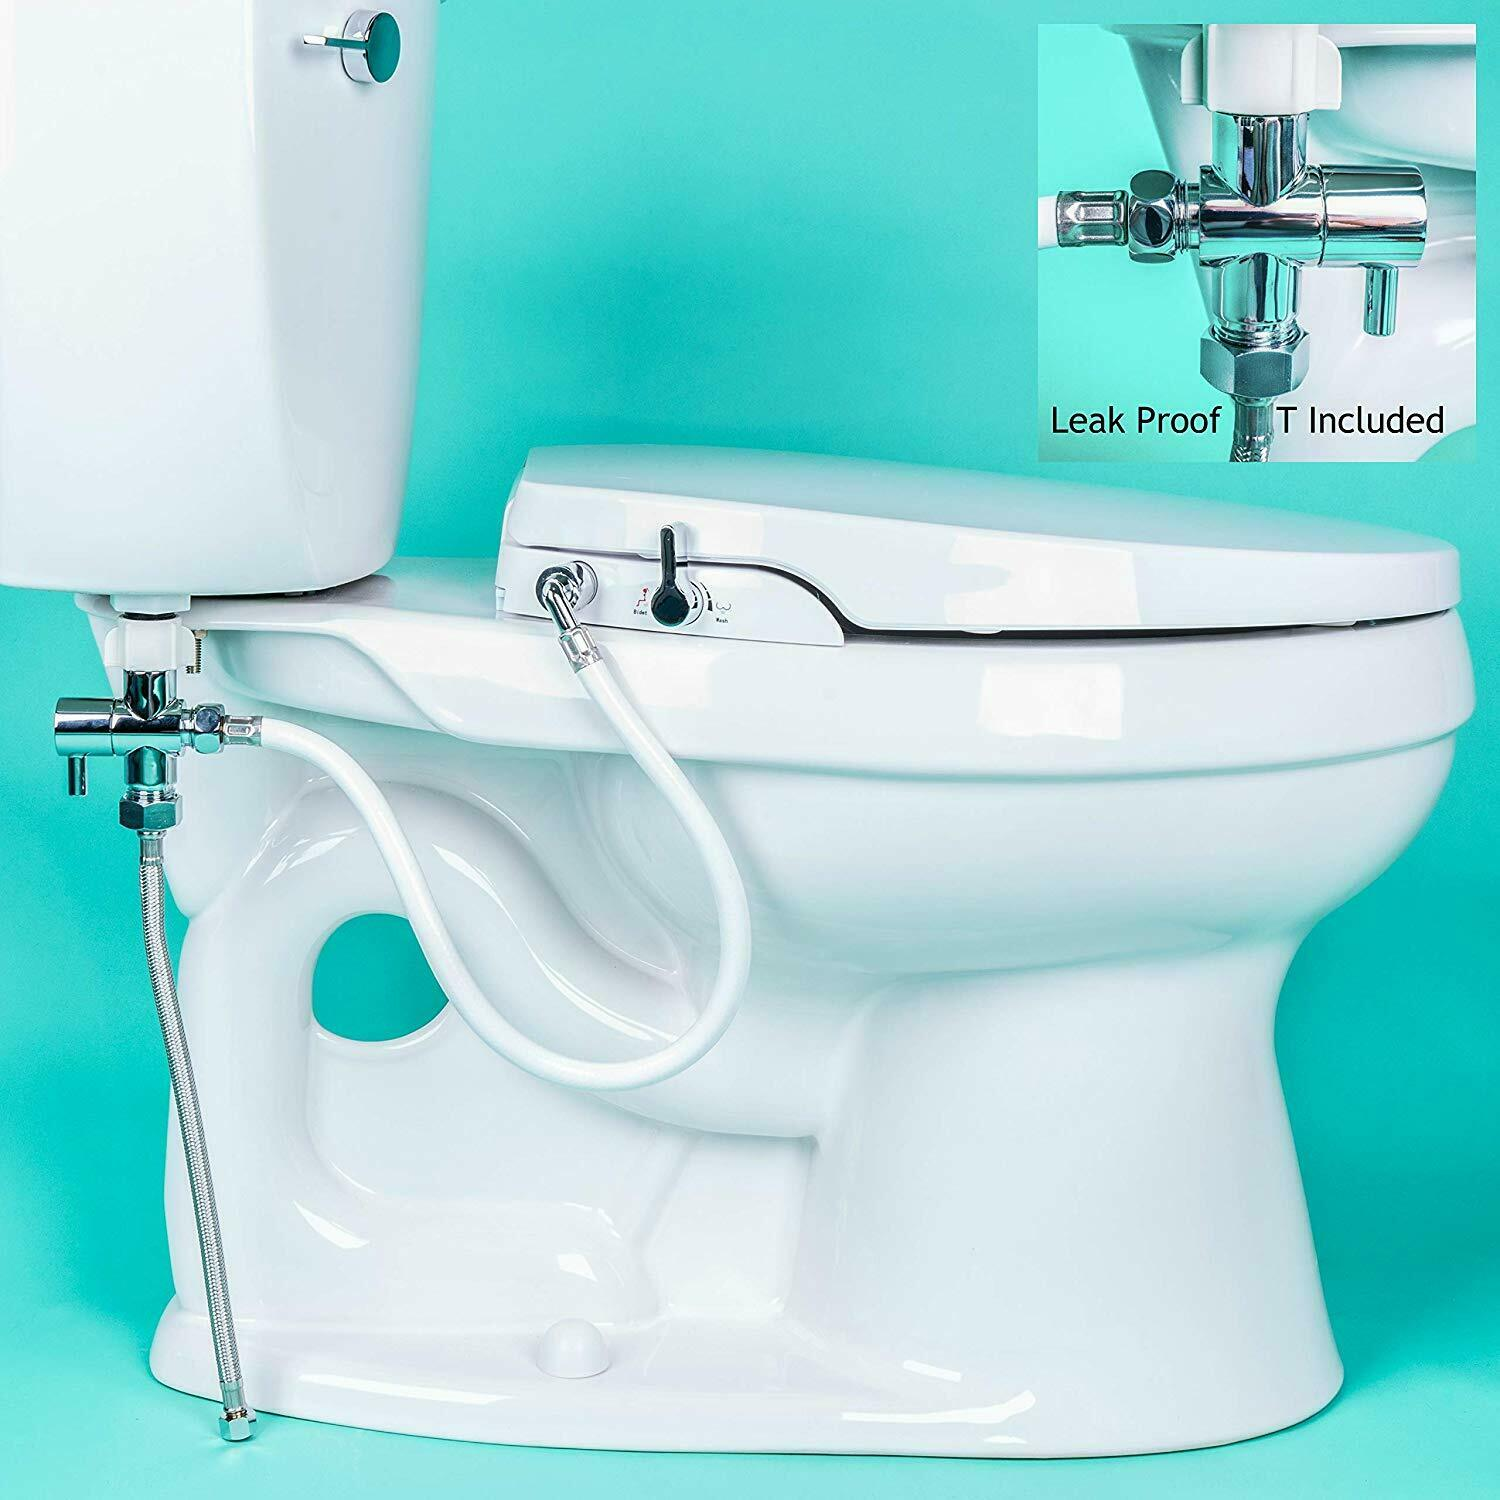 GenieBidet Seat - Self Cleaning Dual Nozzles. Rear & Feminin